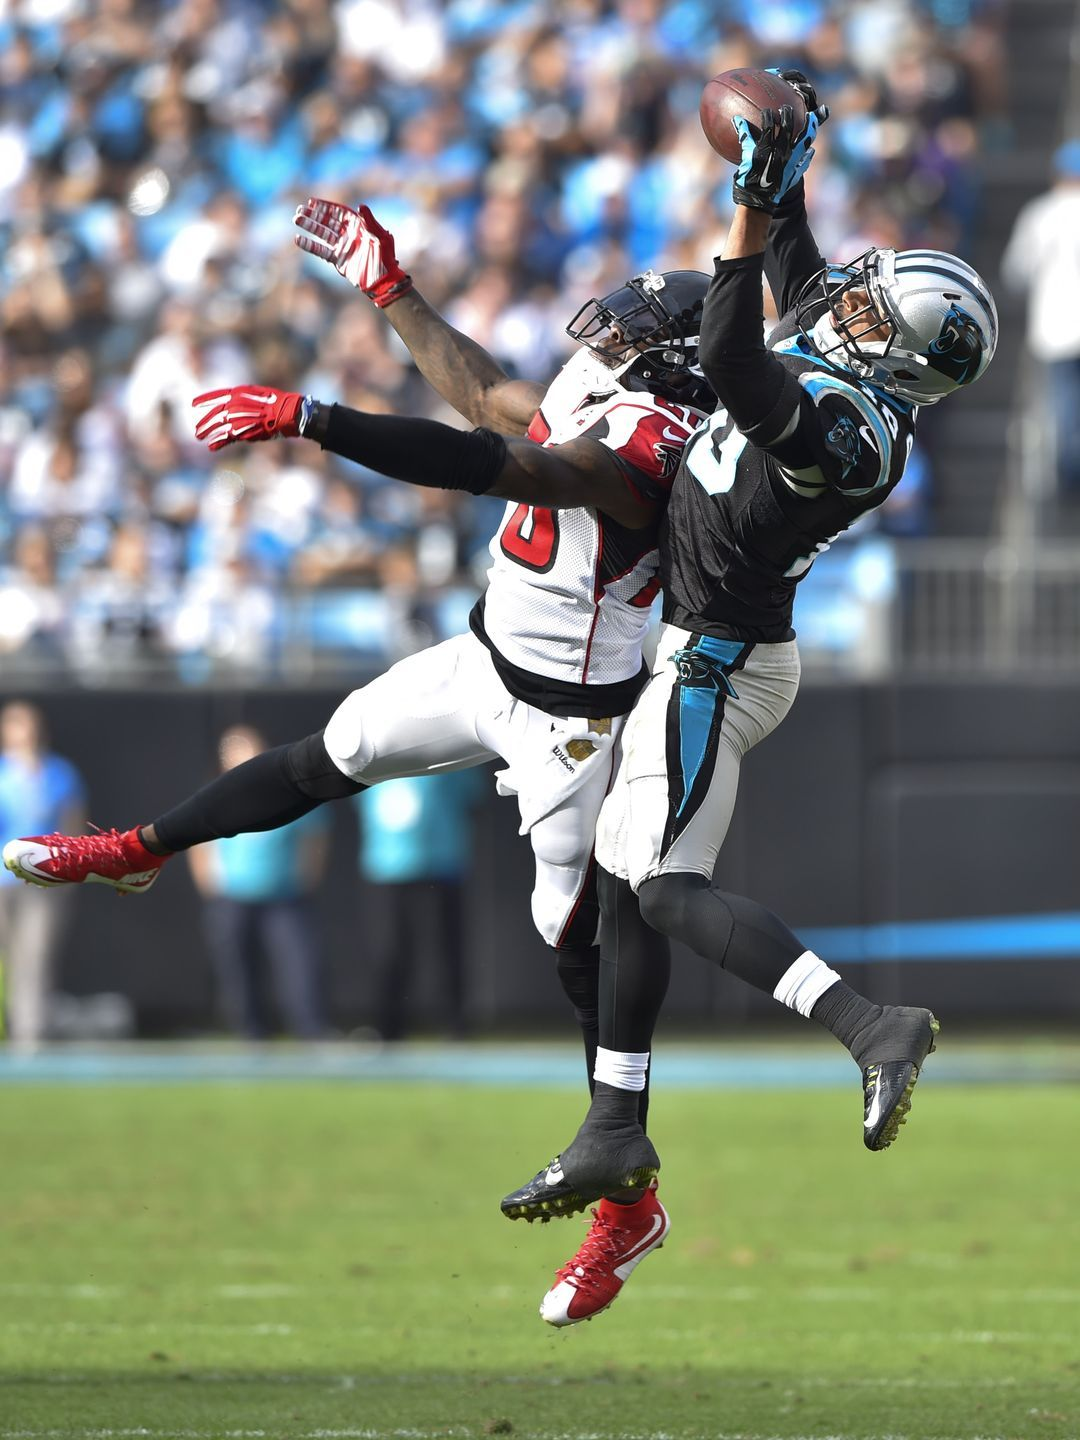 Day in Sports Panthers win, Carolina panthers, Sports